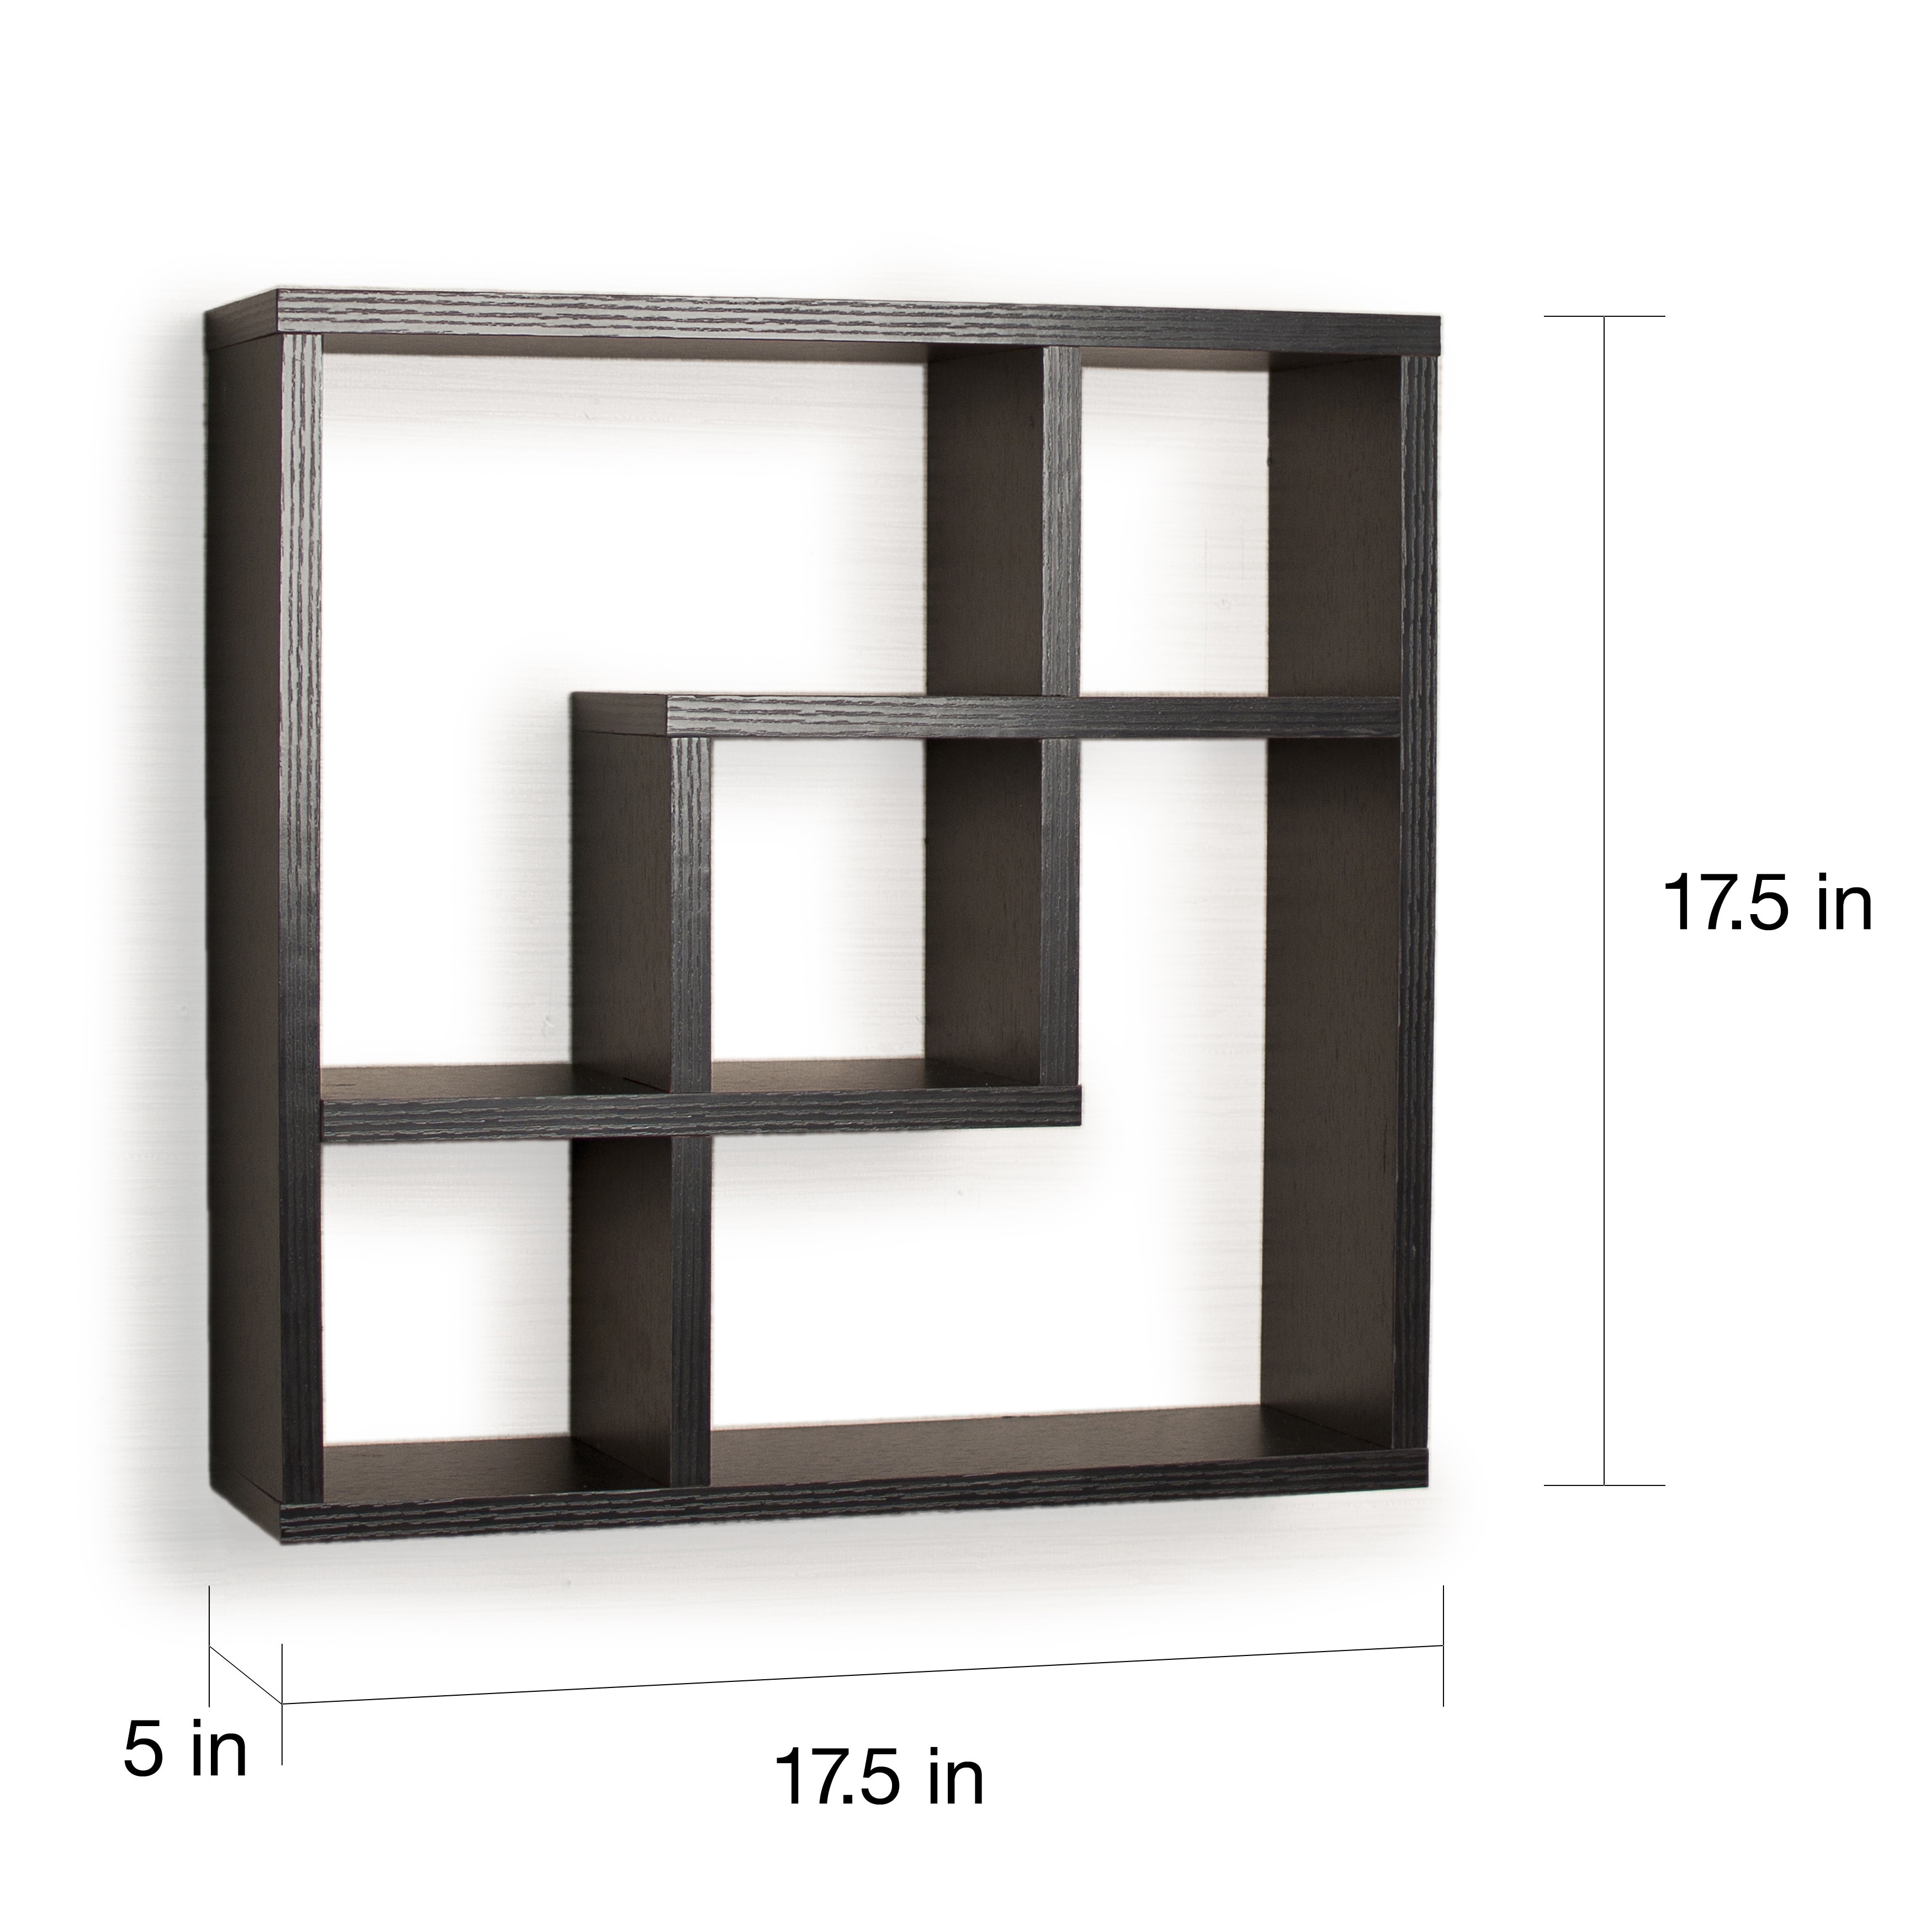 Shop Geometric Square Wall Shelf With 5 Openings Free Shipping On Colorful Shapes Circuit Board Pattern Clock Orders Over 45 8578324